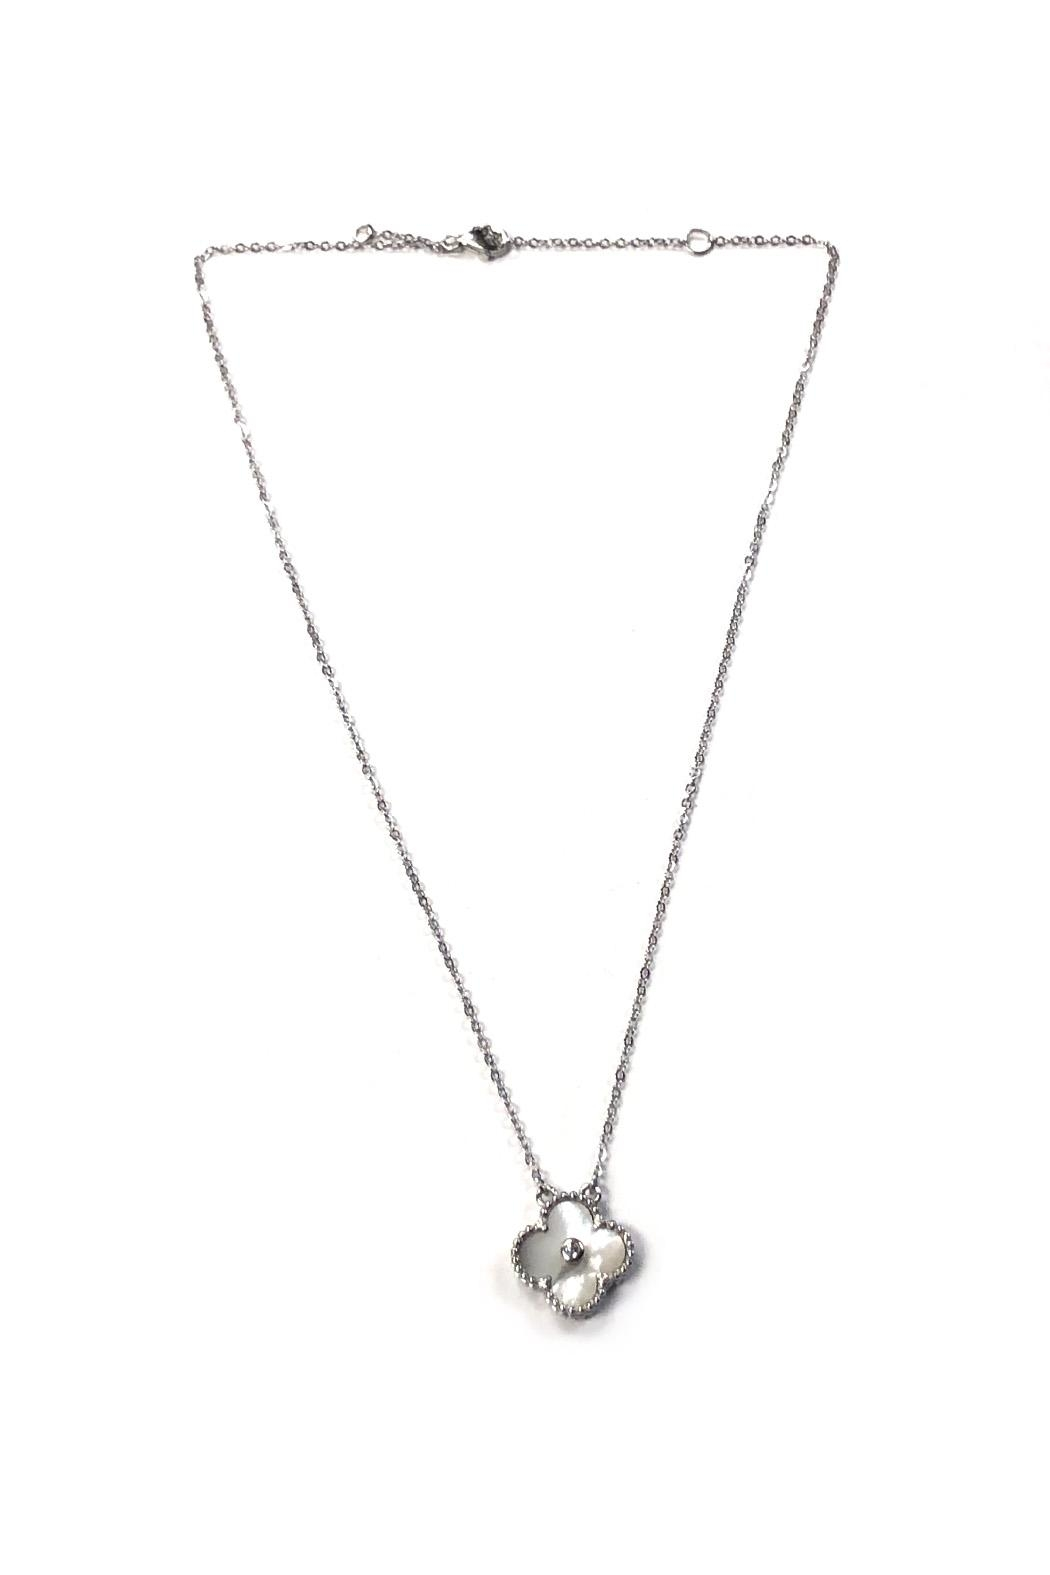 Lets Accessorize White-Stone Clover Necklace - Main Image